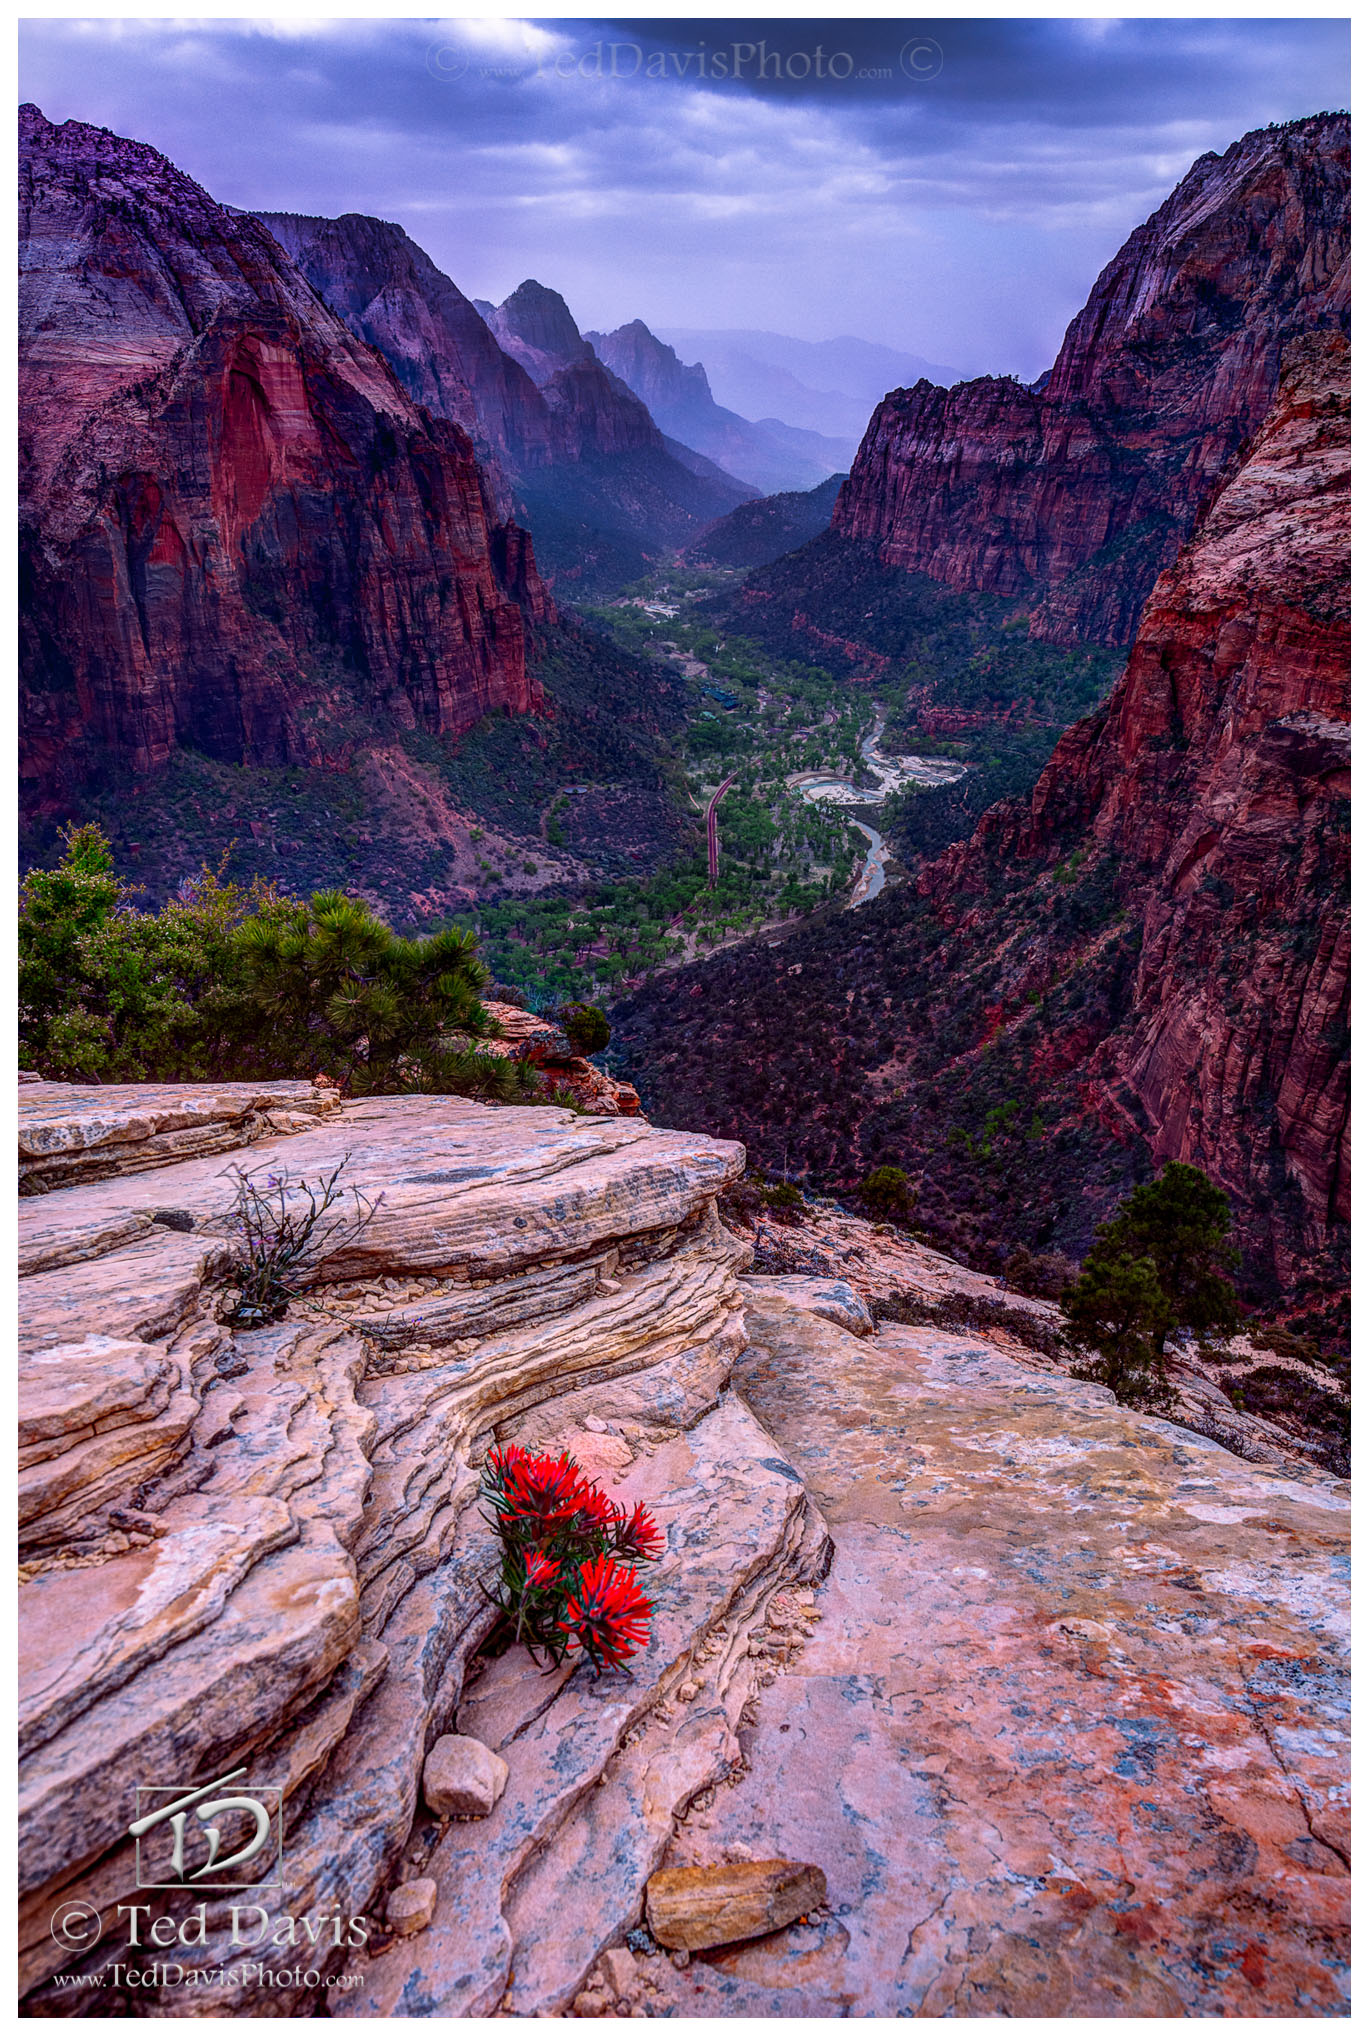 Zion, National Park, edge, red flower, thunderclouds, canyon, photo